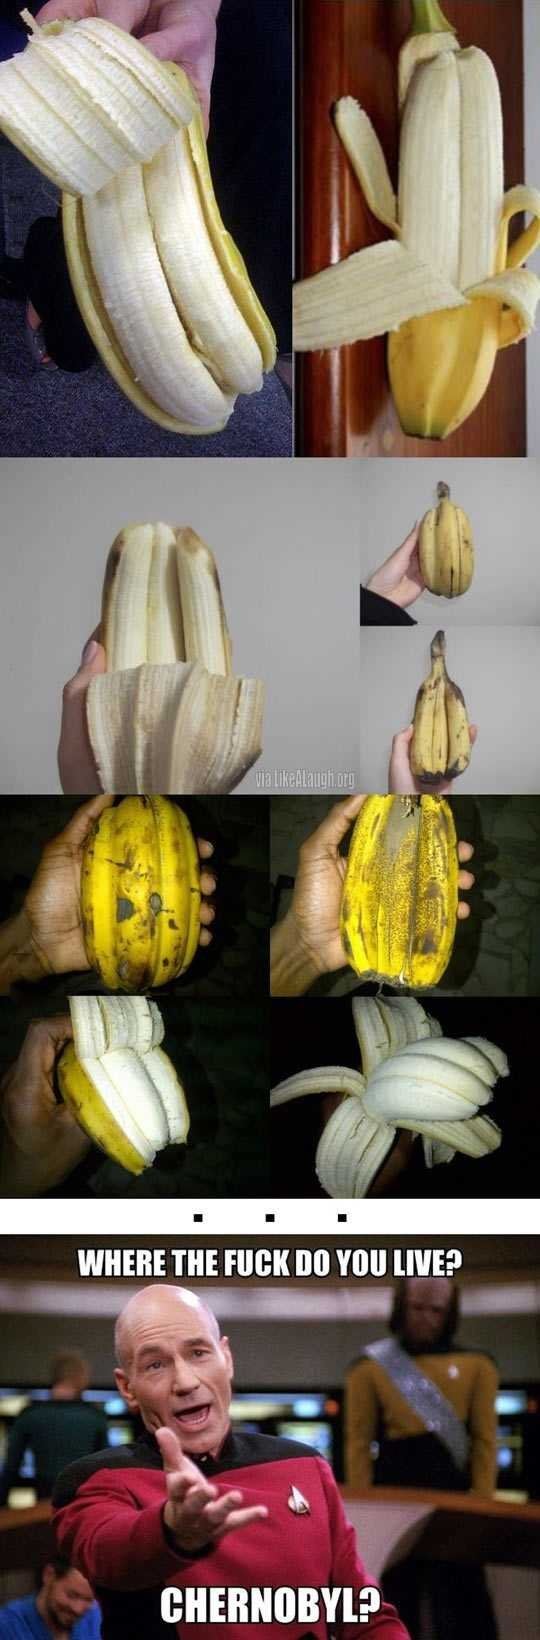 After seeing all these weird bananas. OP will deliverer you some bananas if post comment on your profile or comment. taimanin. i wanna bet that happens all the time on trees. They just don't make it to the store.